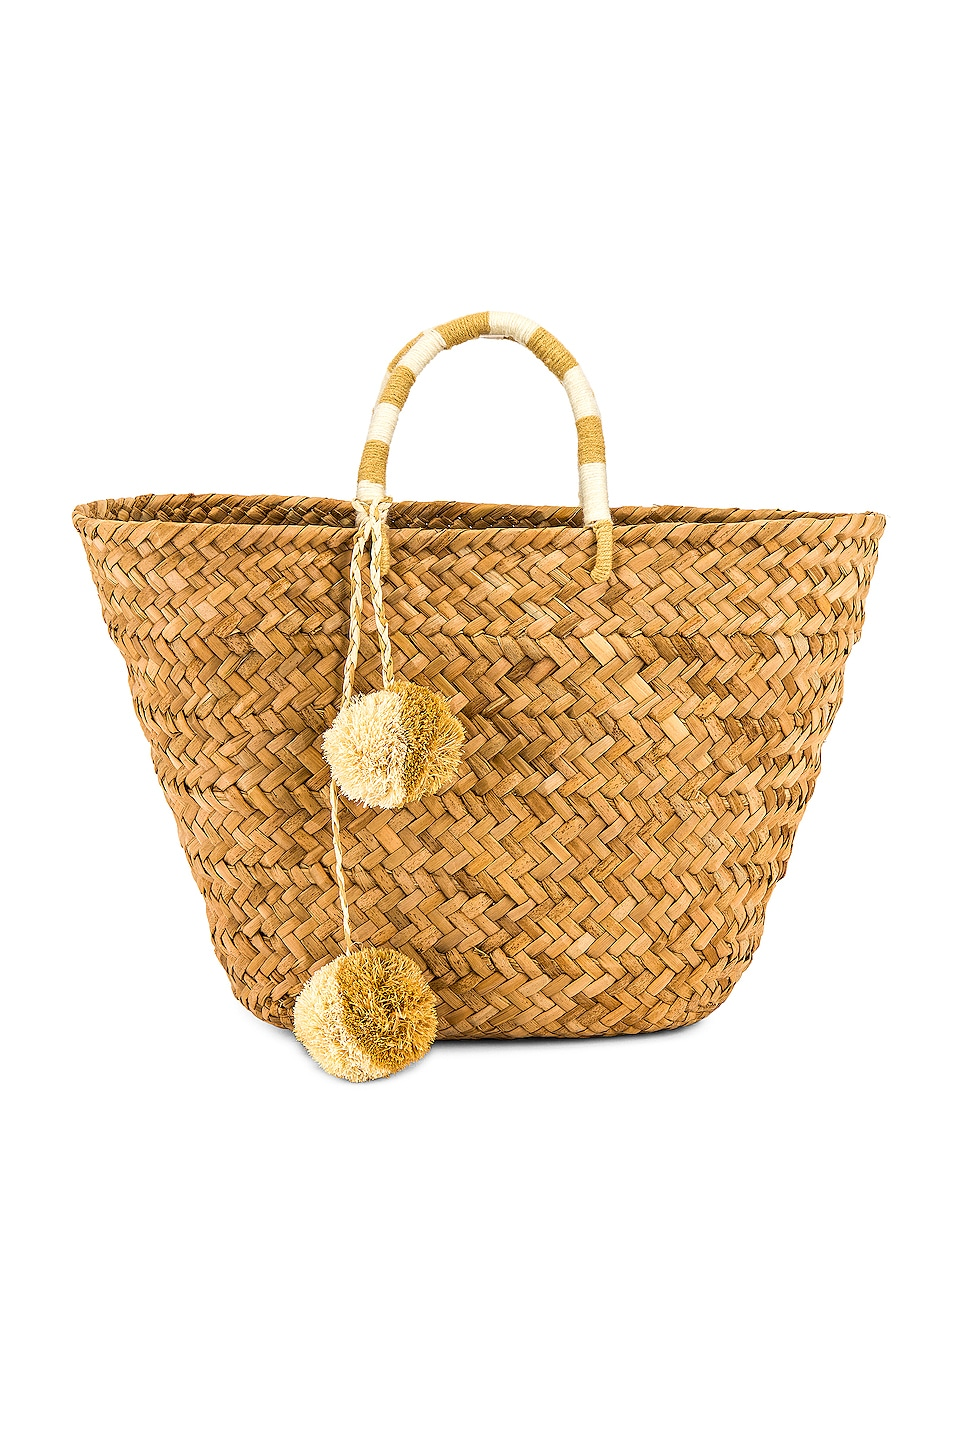 KAYU St. Tropez Tote in Natural